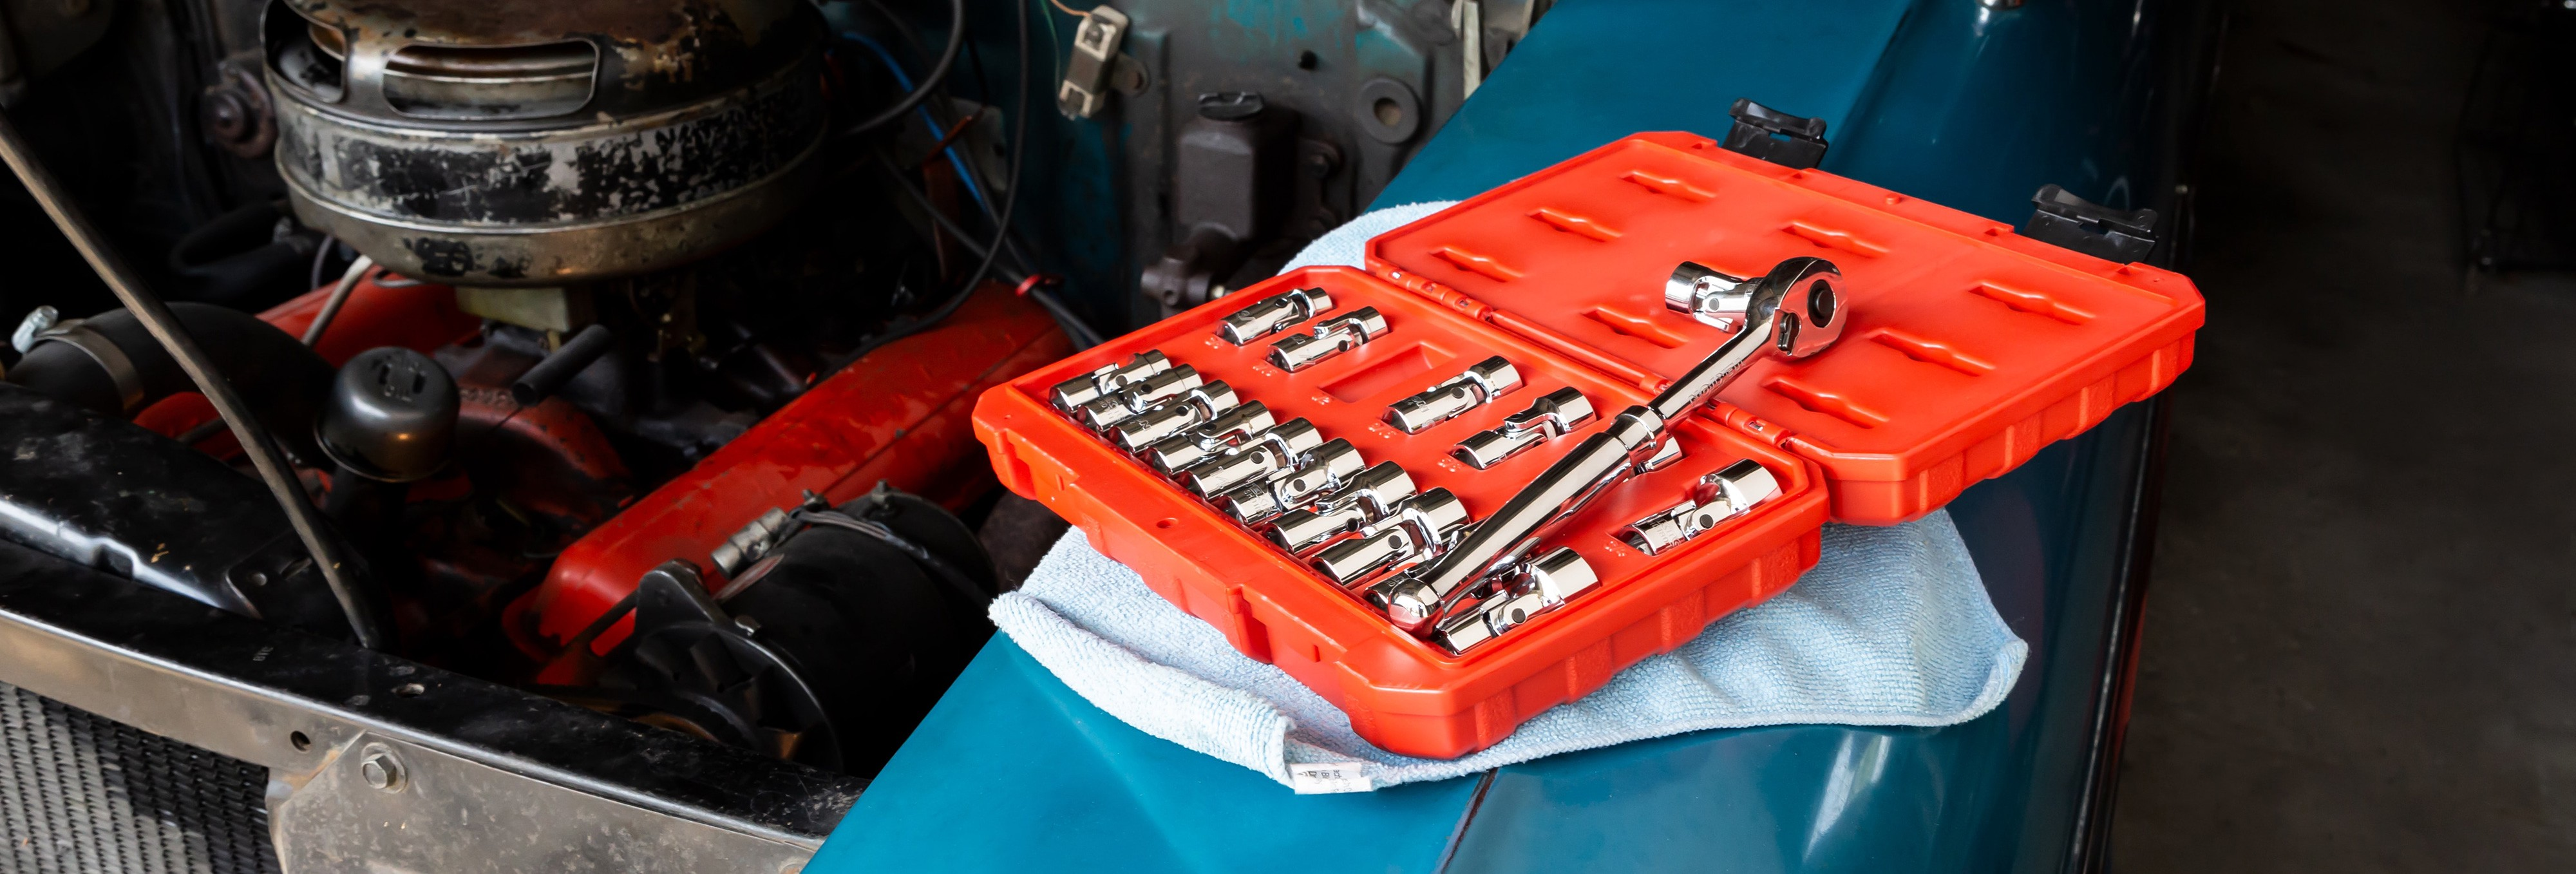 A toolbox leans on an engine to fix.